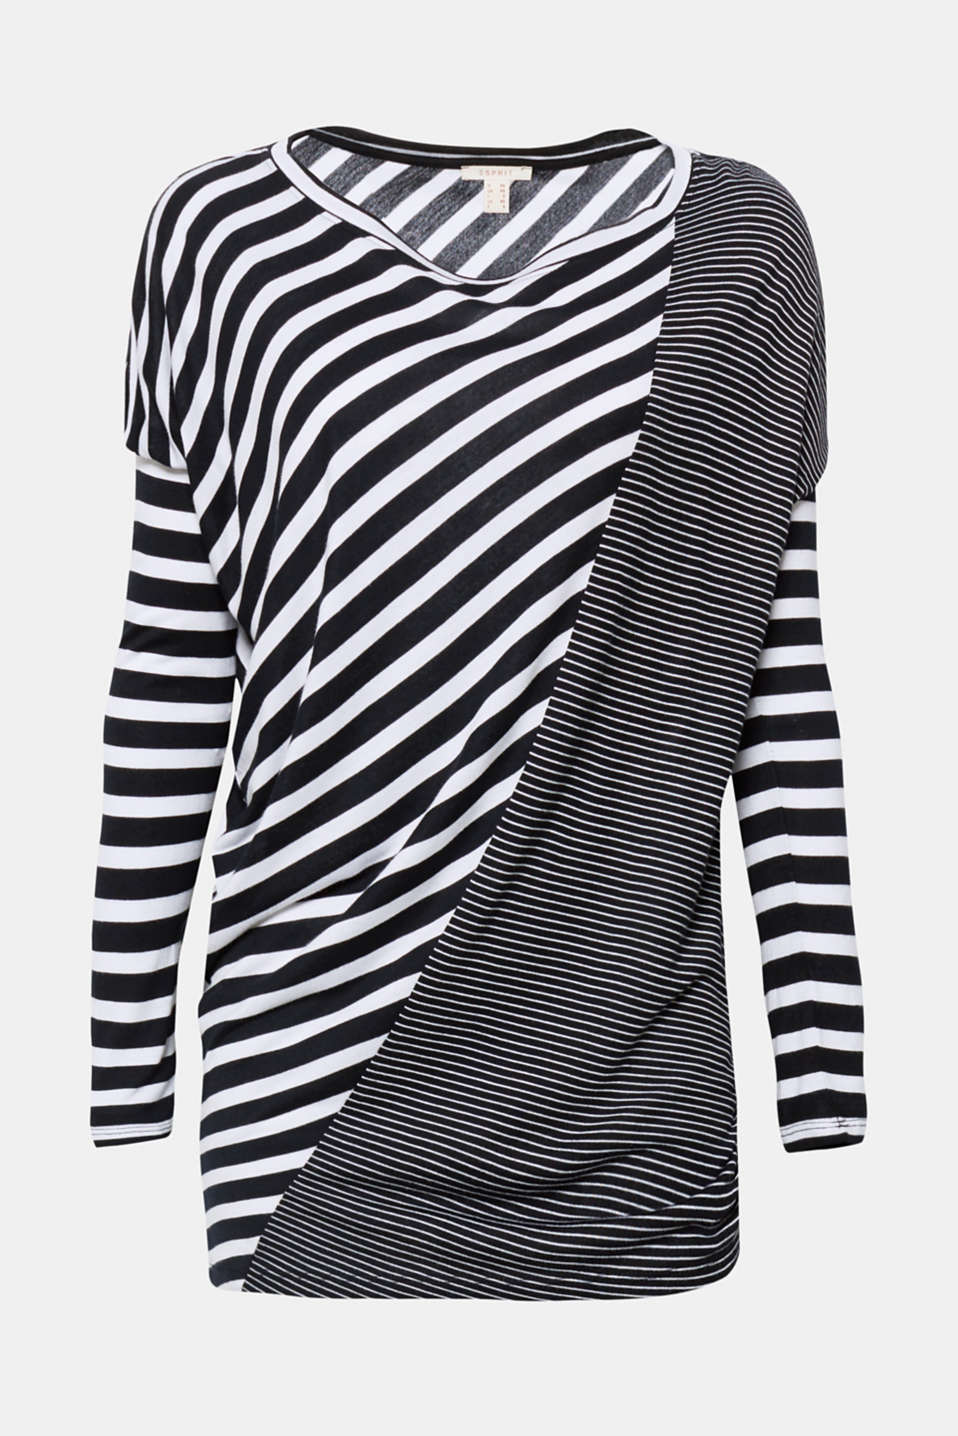 Vertical, diagonal or horizontal! This top provides a varied combination of stripes and always looks great thanks to its asymmetric hem.